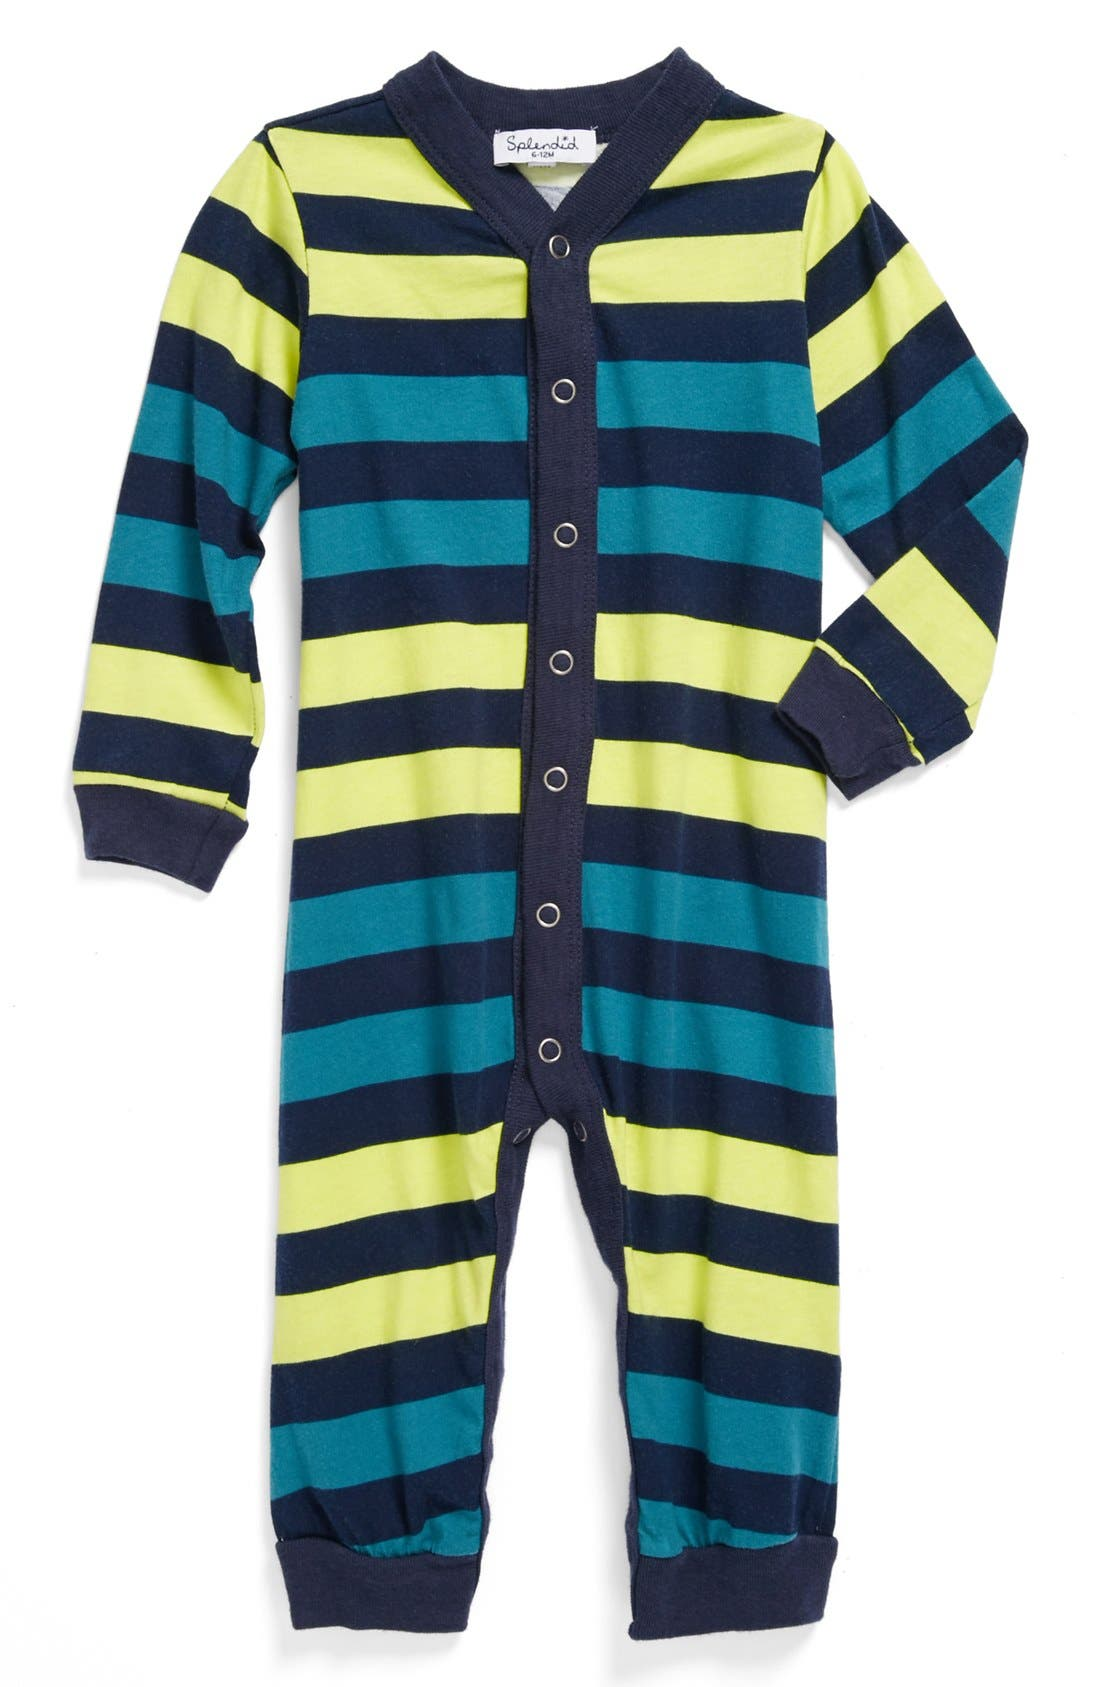 Alternate Image 1 Selected - Splendid Stripe Romper (Baby)